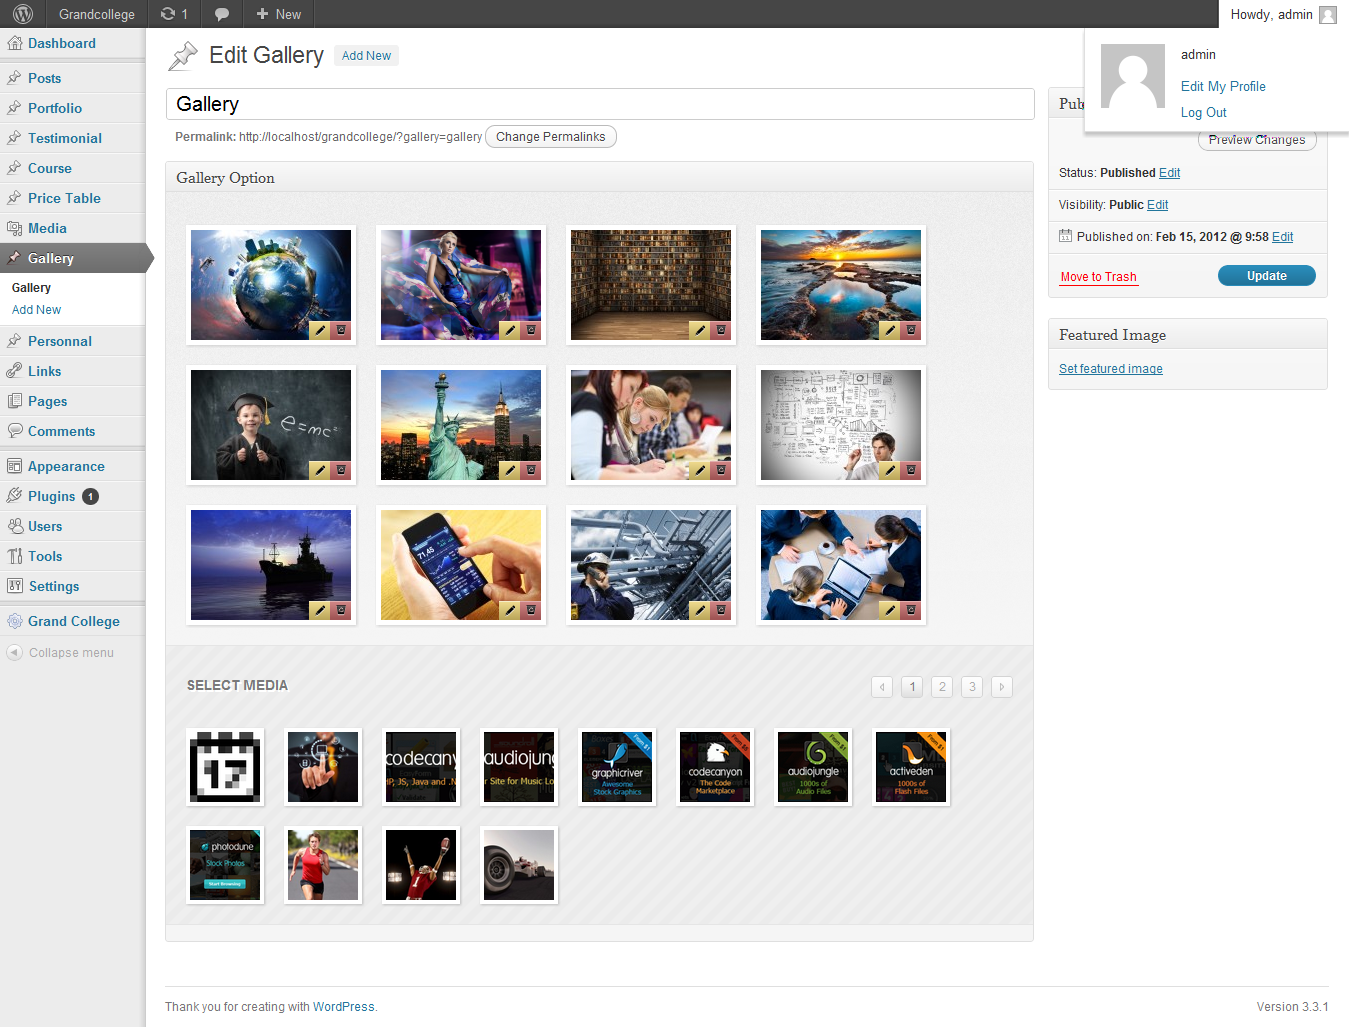 20 College WordPress Themes for